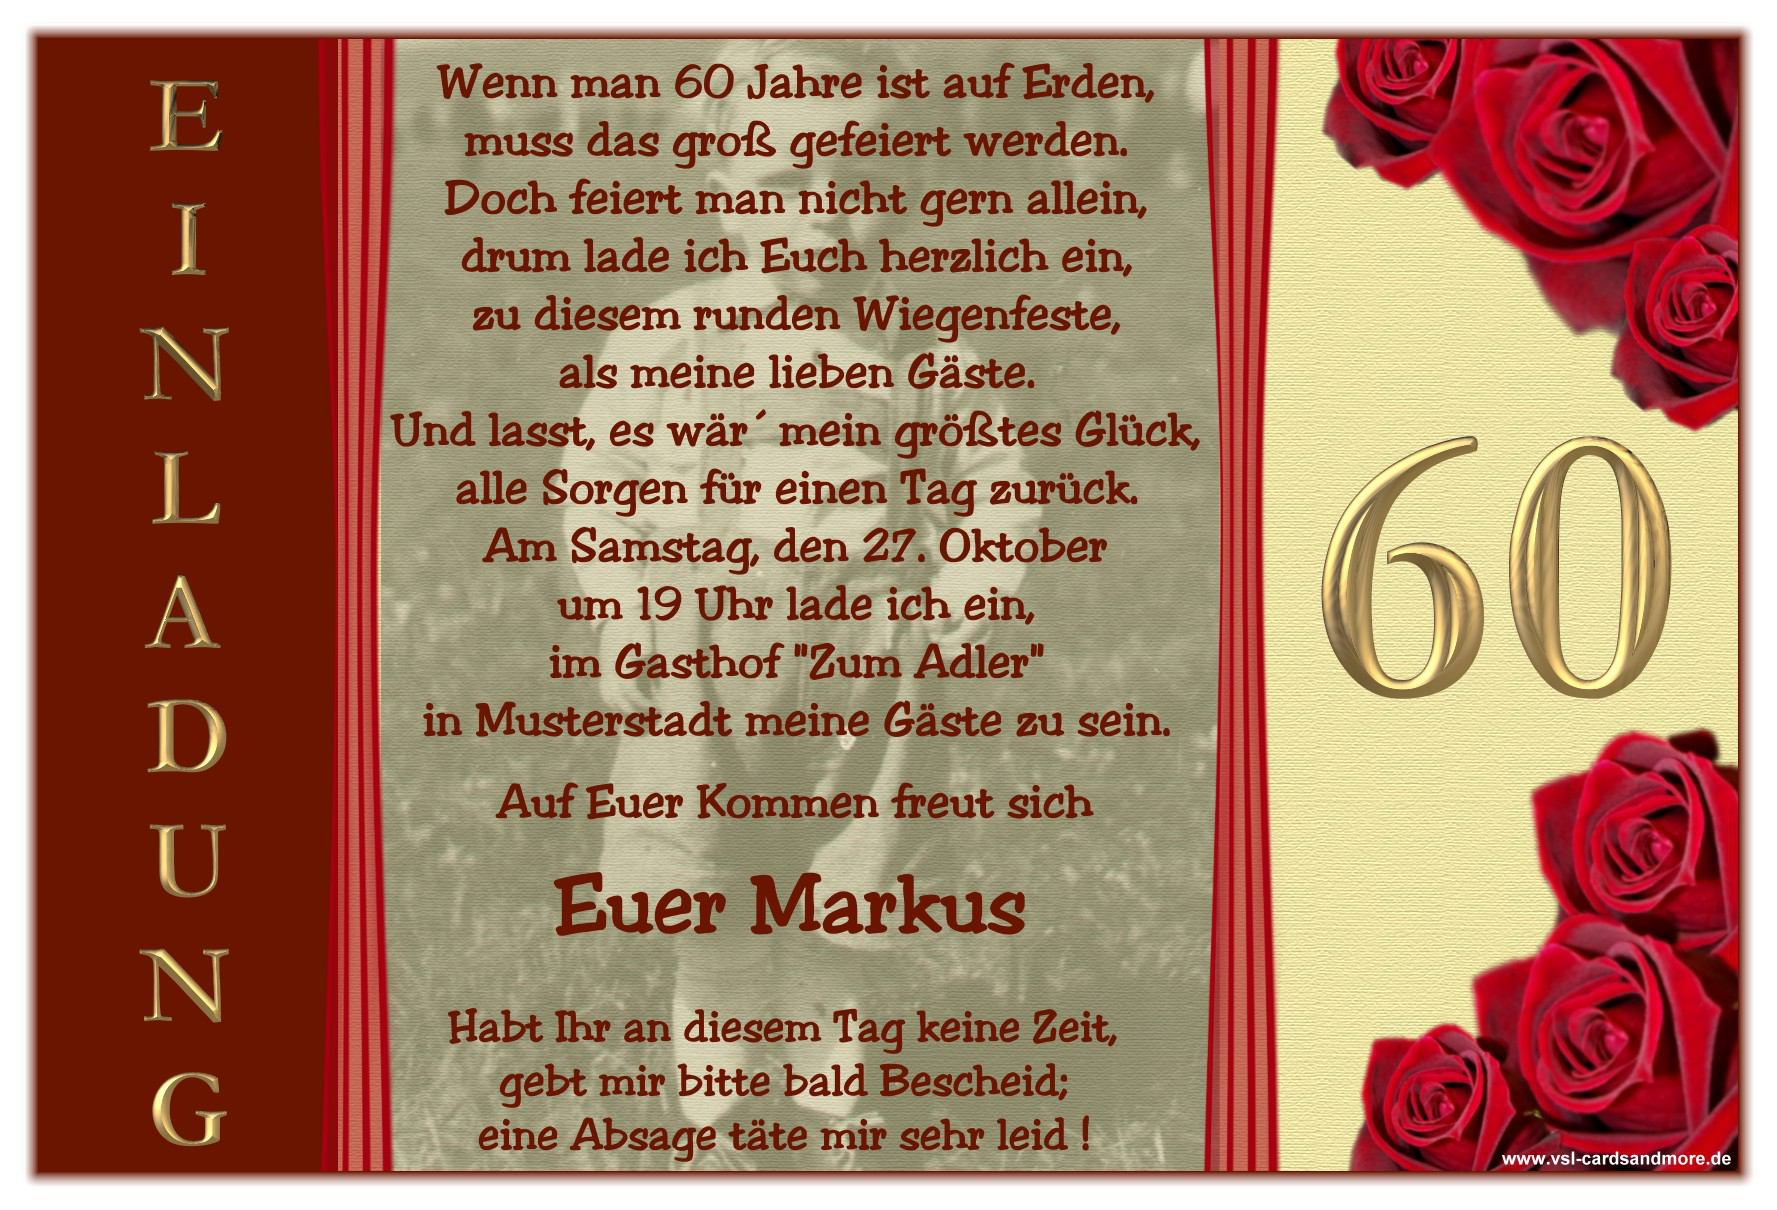 Related Image For Einladung Geburtstag Text 50